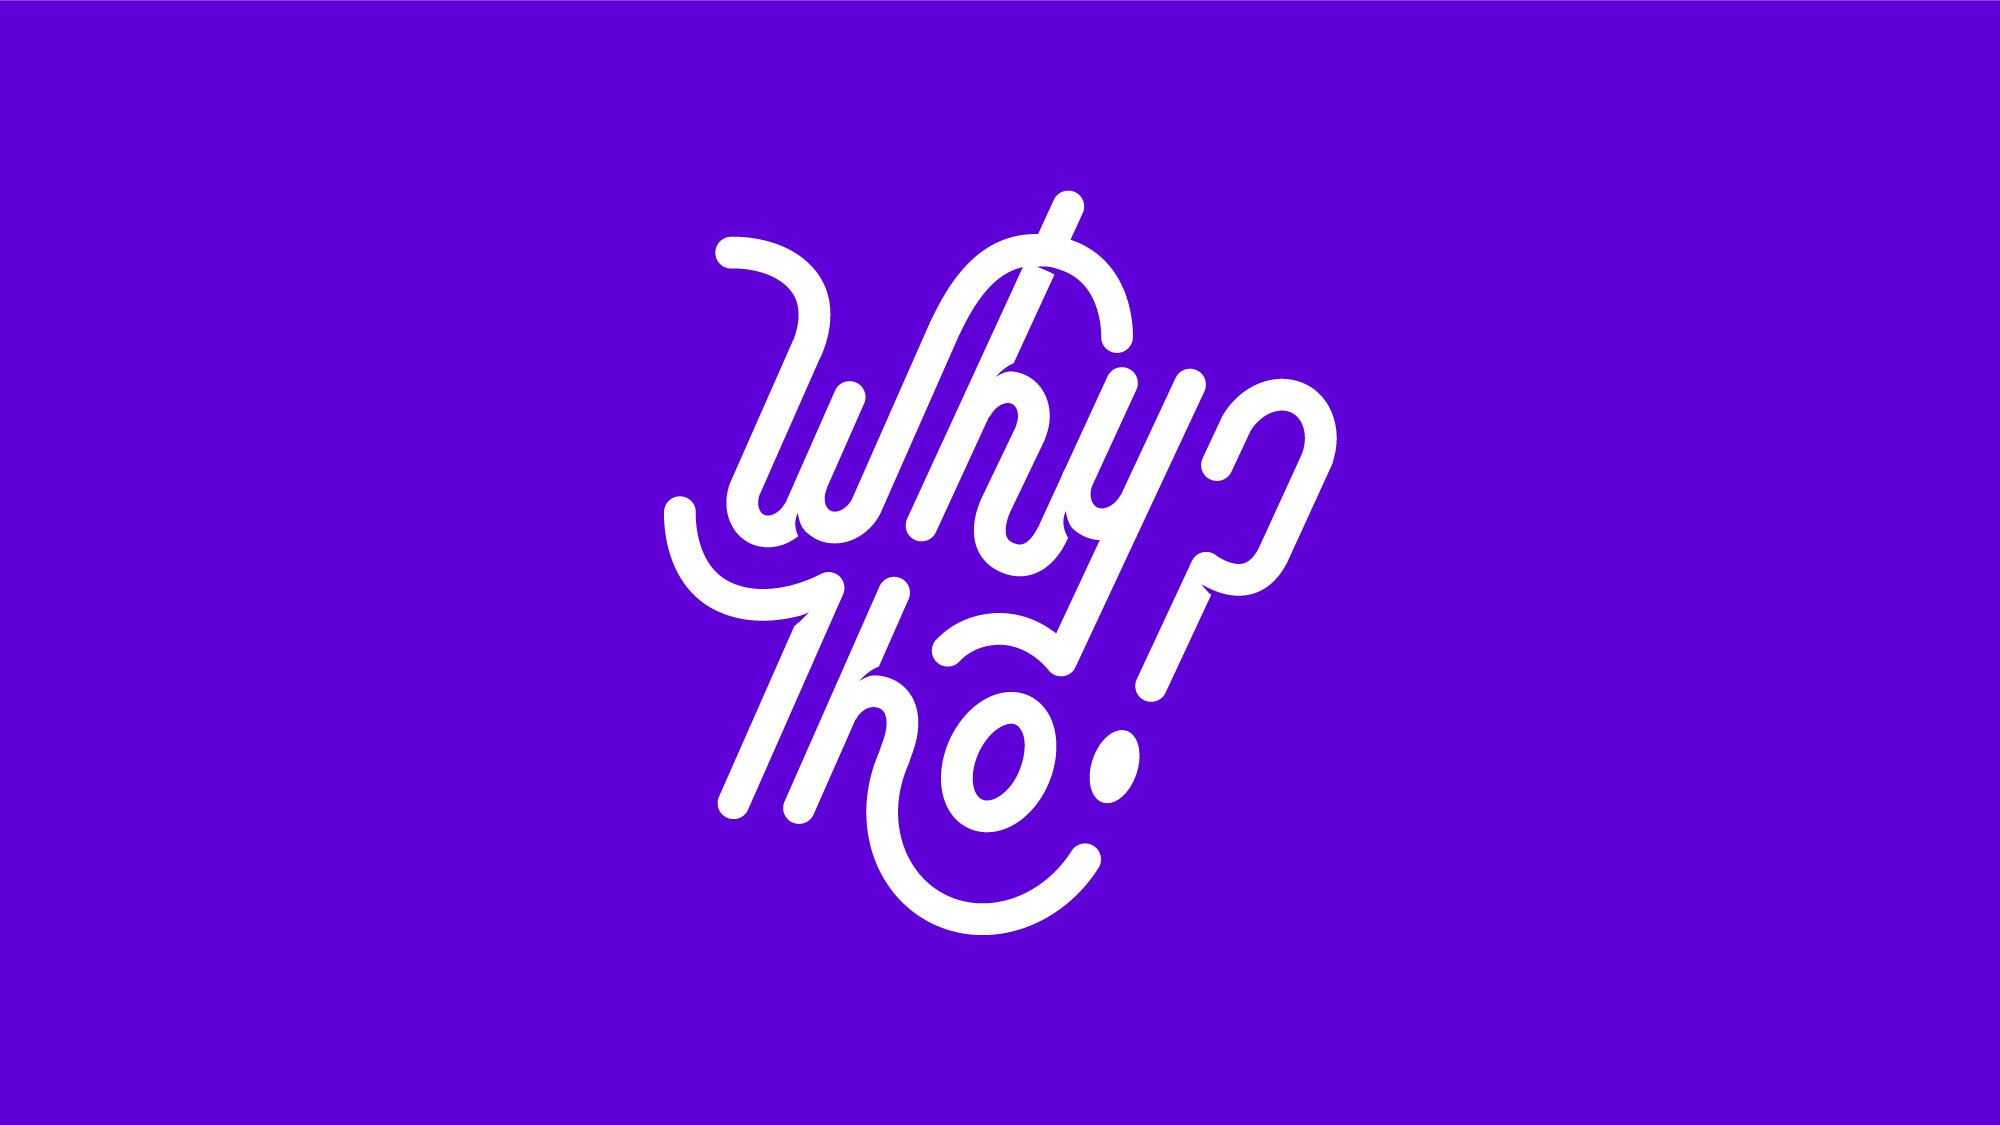 Why Tho Podcast: September 9 - September 15, 2020